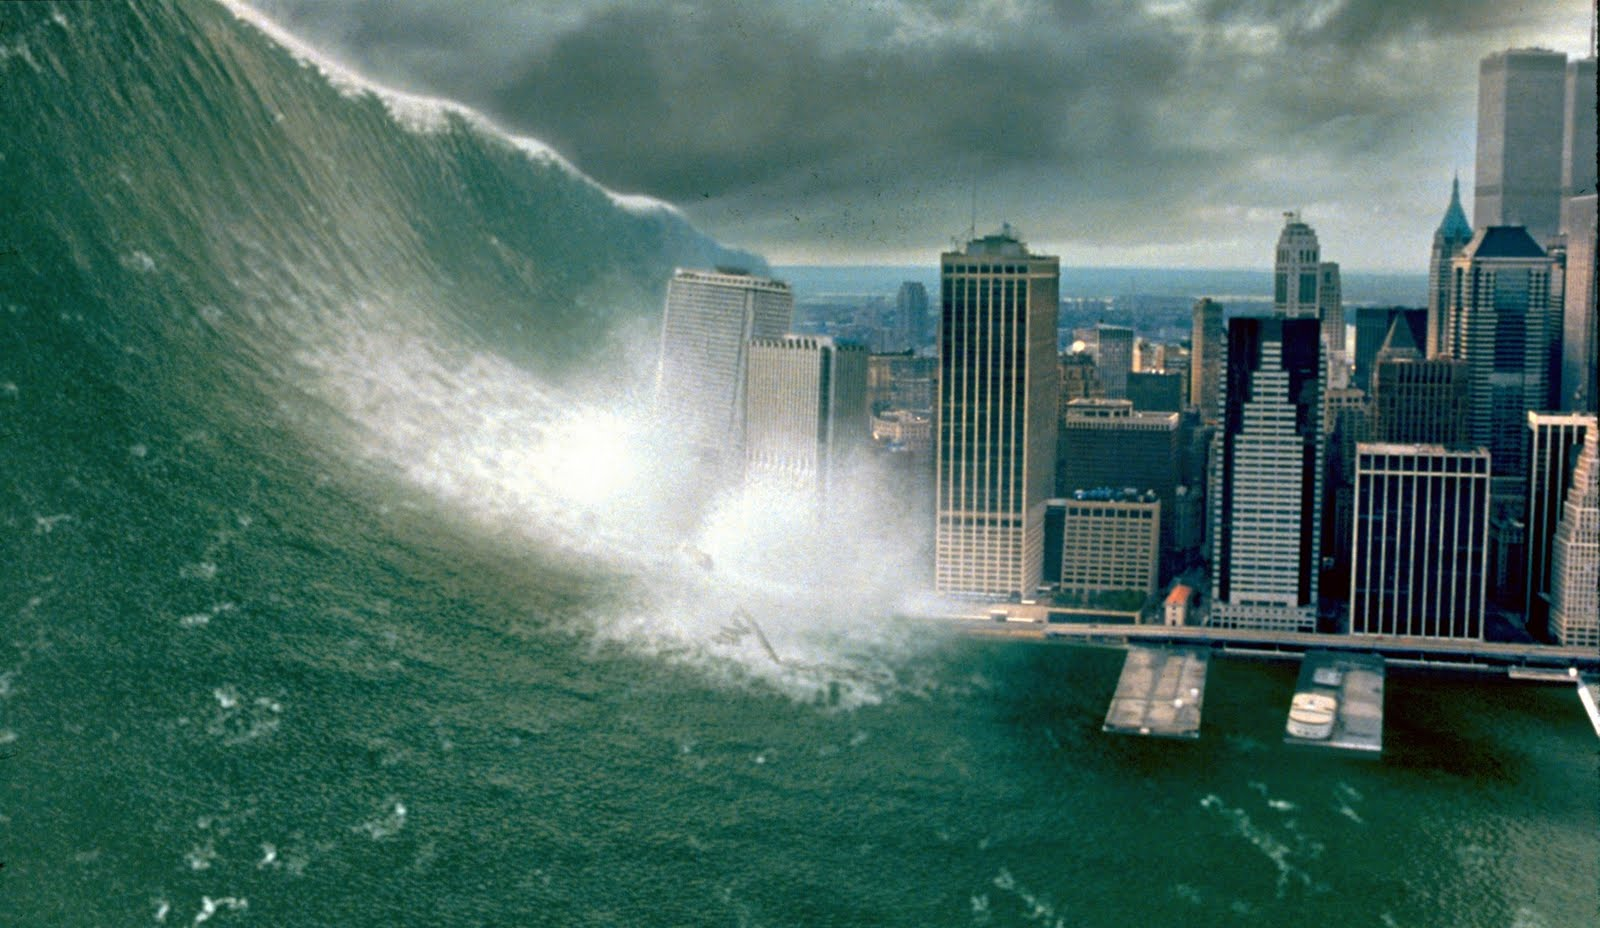 8 Great Disaster Movie Scenes | And So It Begins...